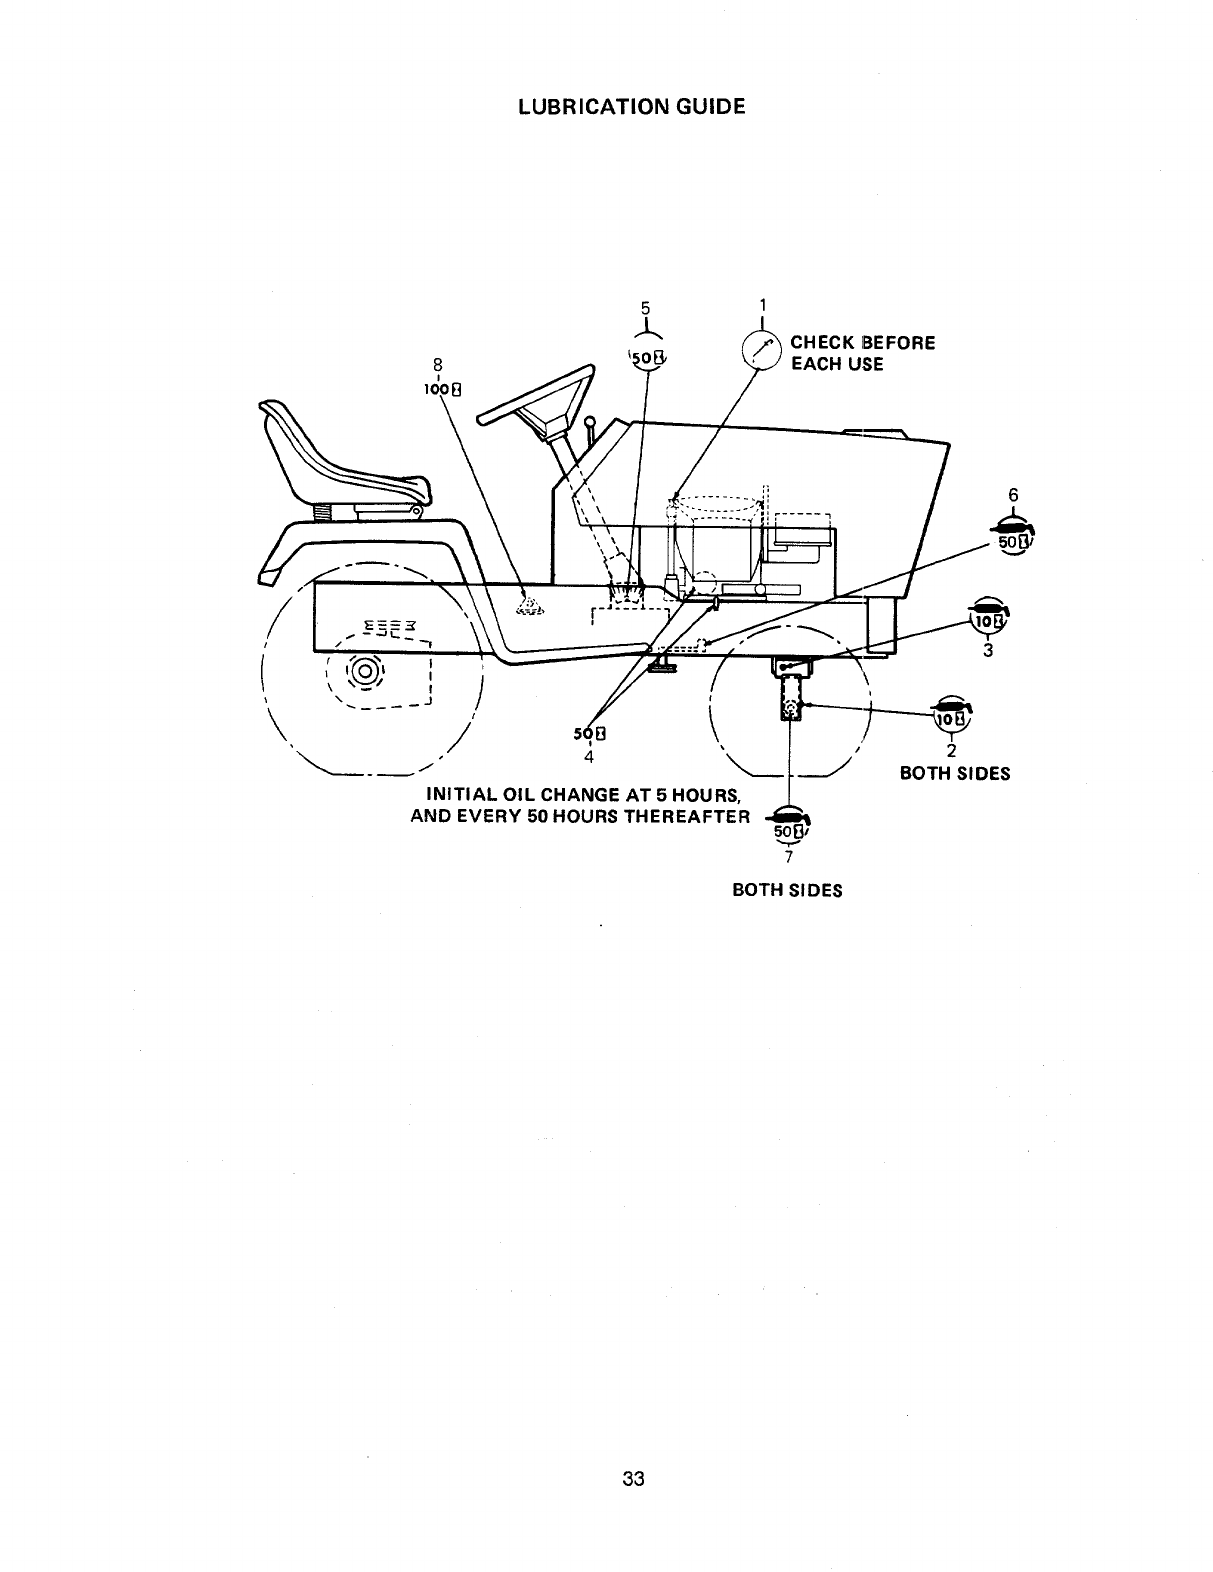 Page 33 of Cub Cadet Lawn Mower 1730 User Guide